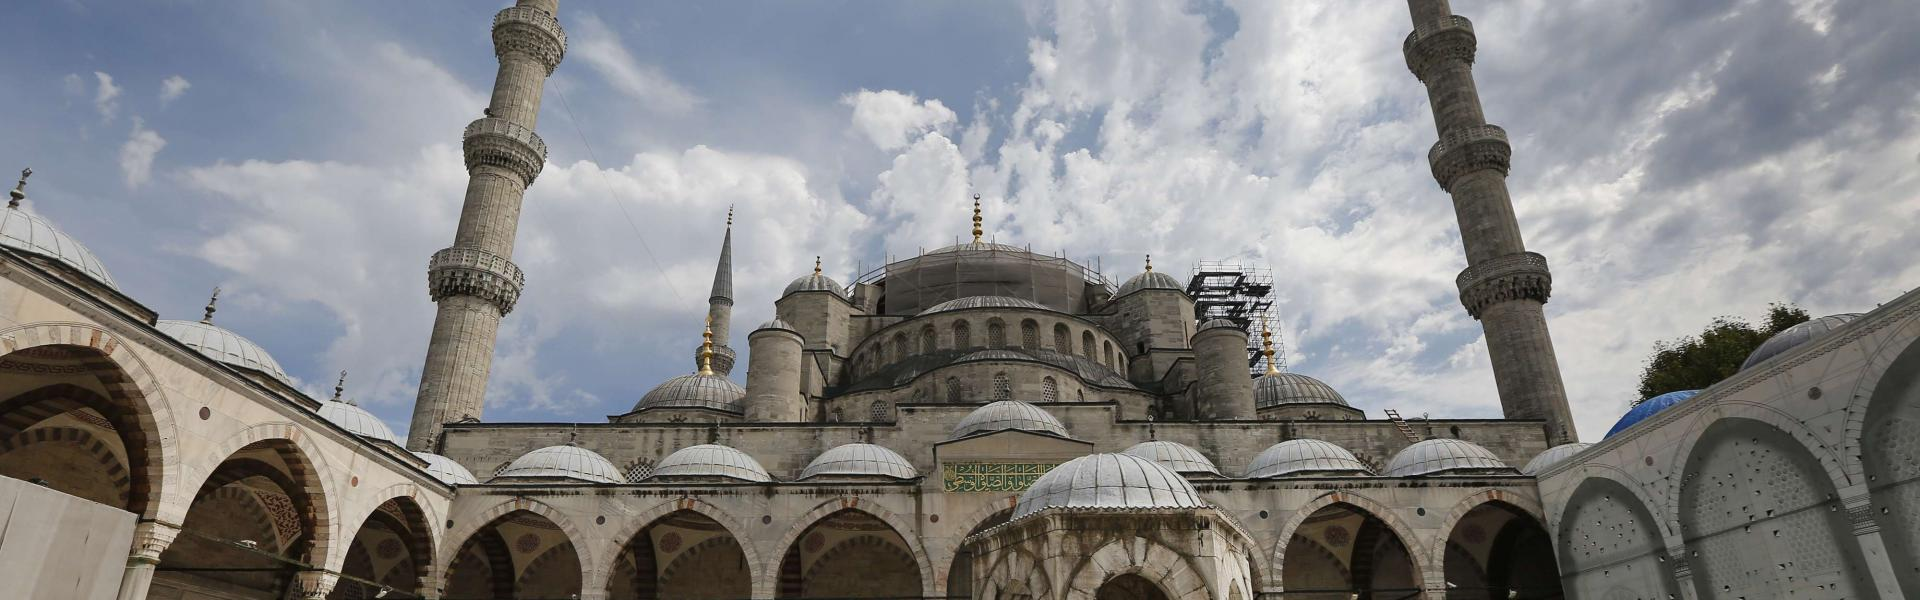 Tourists visit the iconic Sultan Ahmed Mosque, better known as the Blue Mosque, in the historic Sultanahmet district of Istanbul, Friday, Aug. 17, 2018. AP/Pitarakis